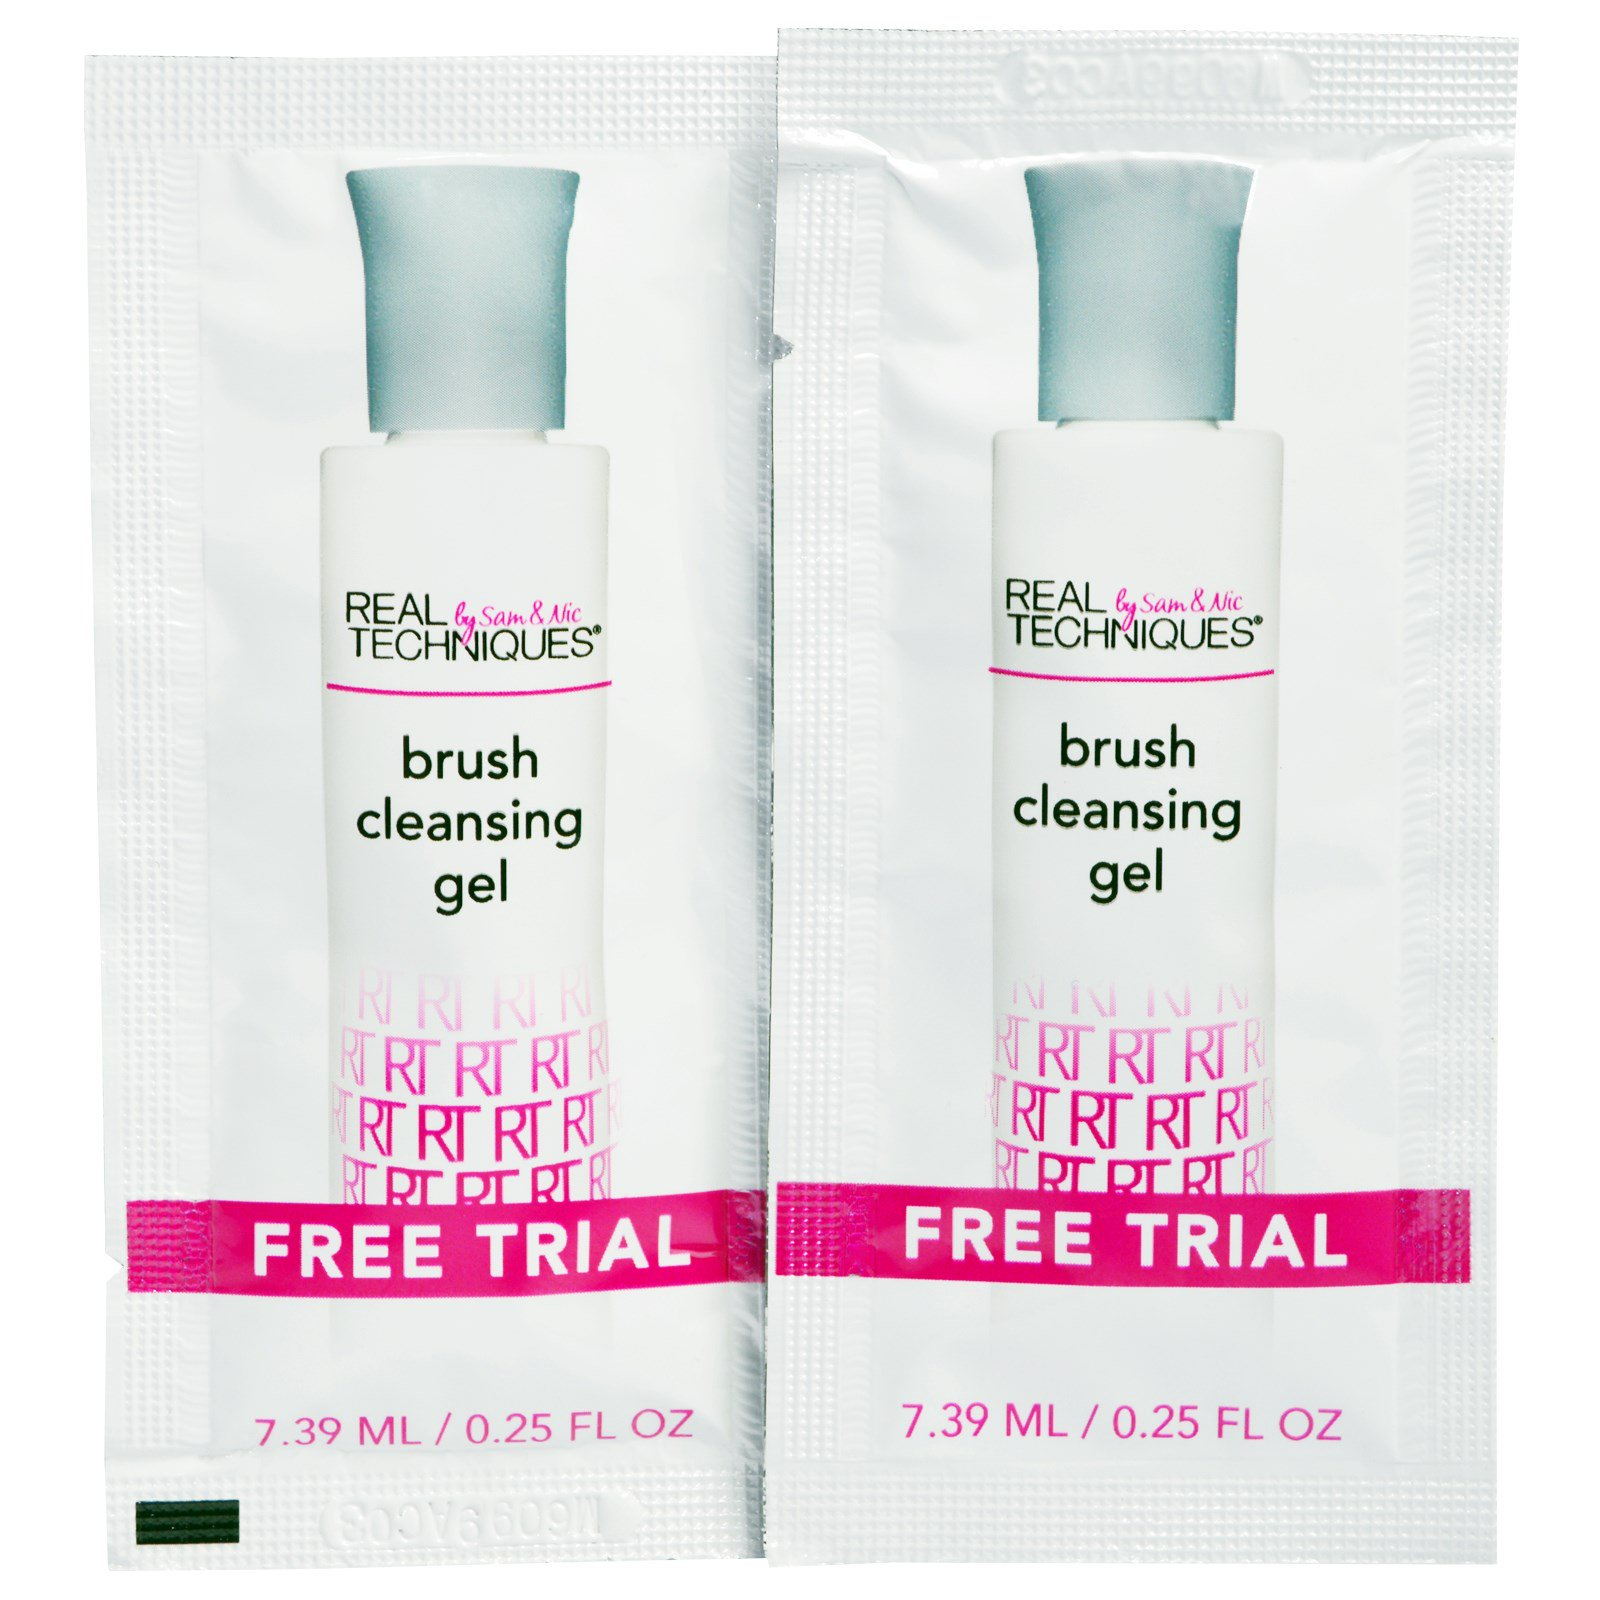 Real Techniques by Sam and Nic, Deep Cleansing Gel, 5.1 fl oz(pack of 1) HOT PINK SONIC FACIAL CLEANSER